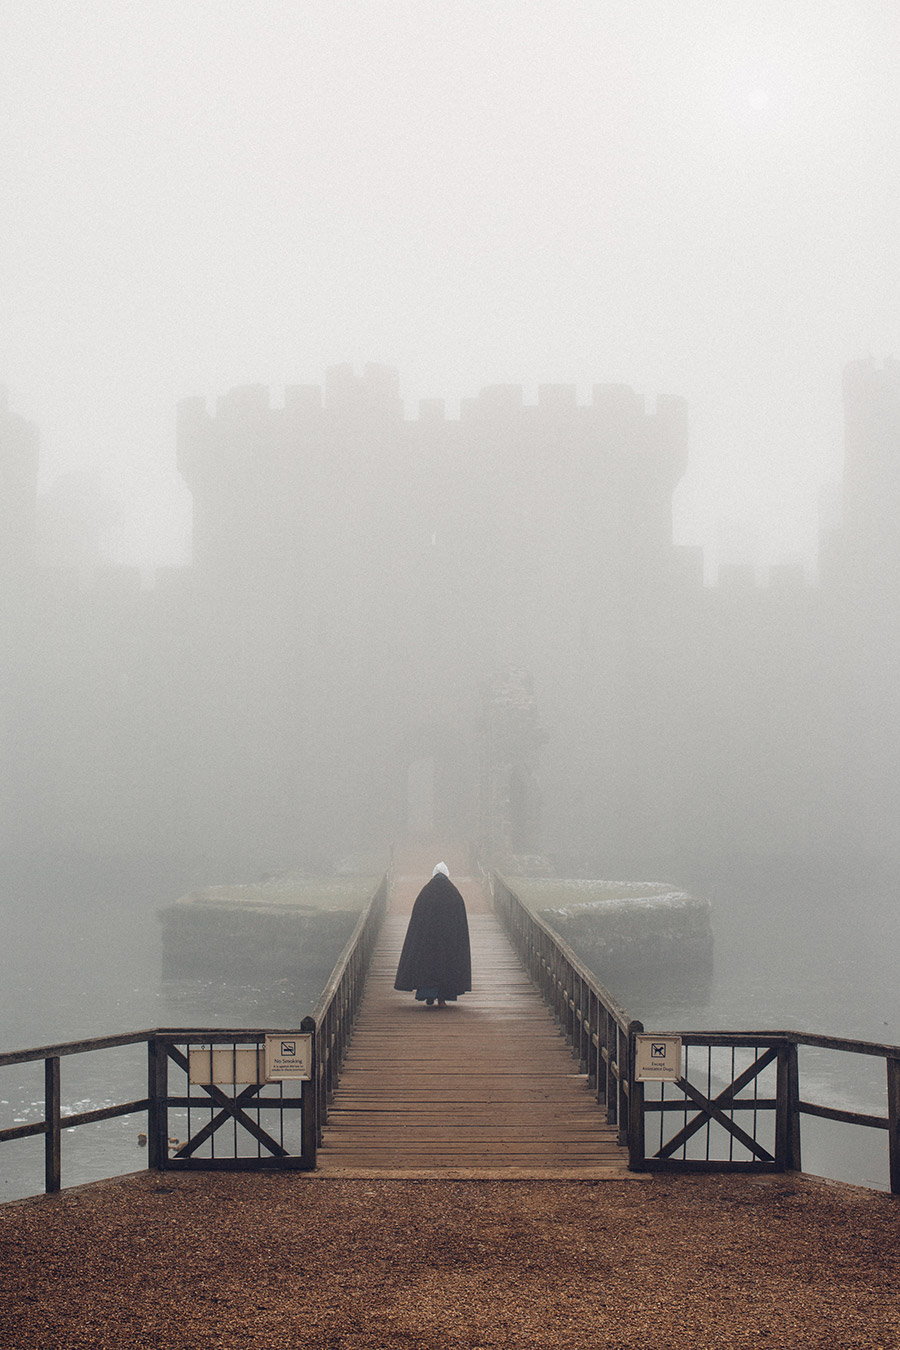 Bodiam castle winter 2017